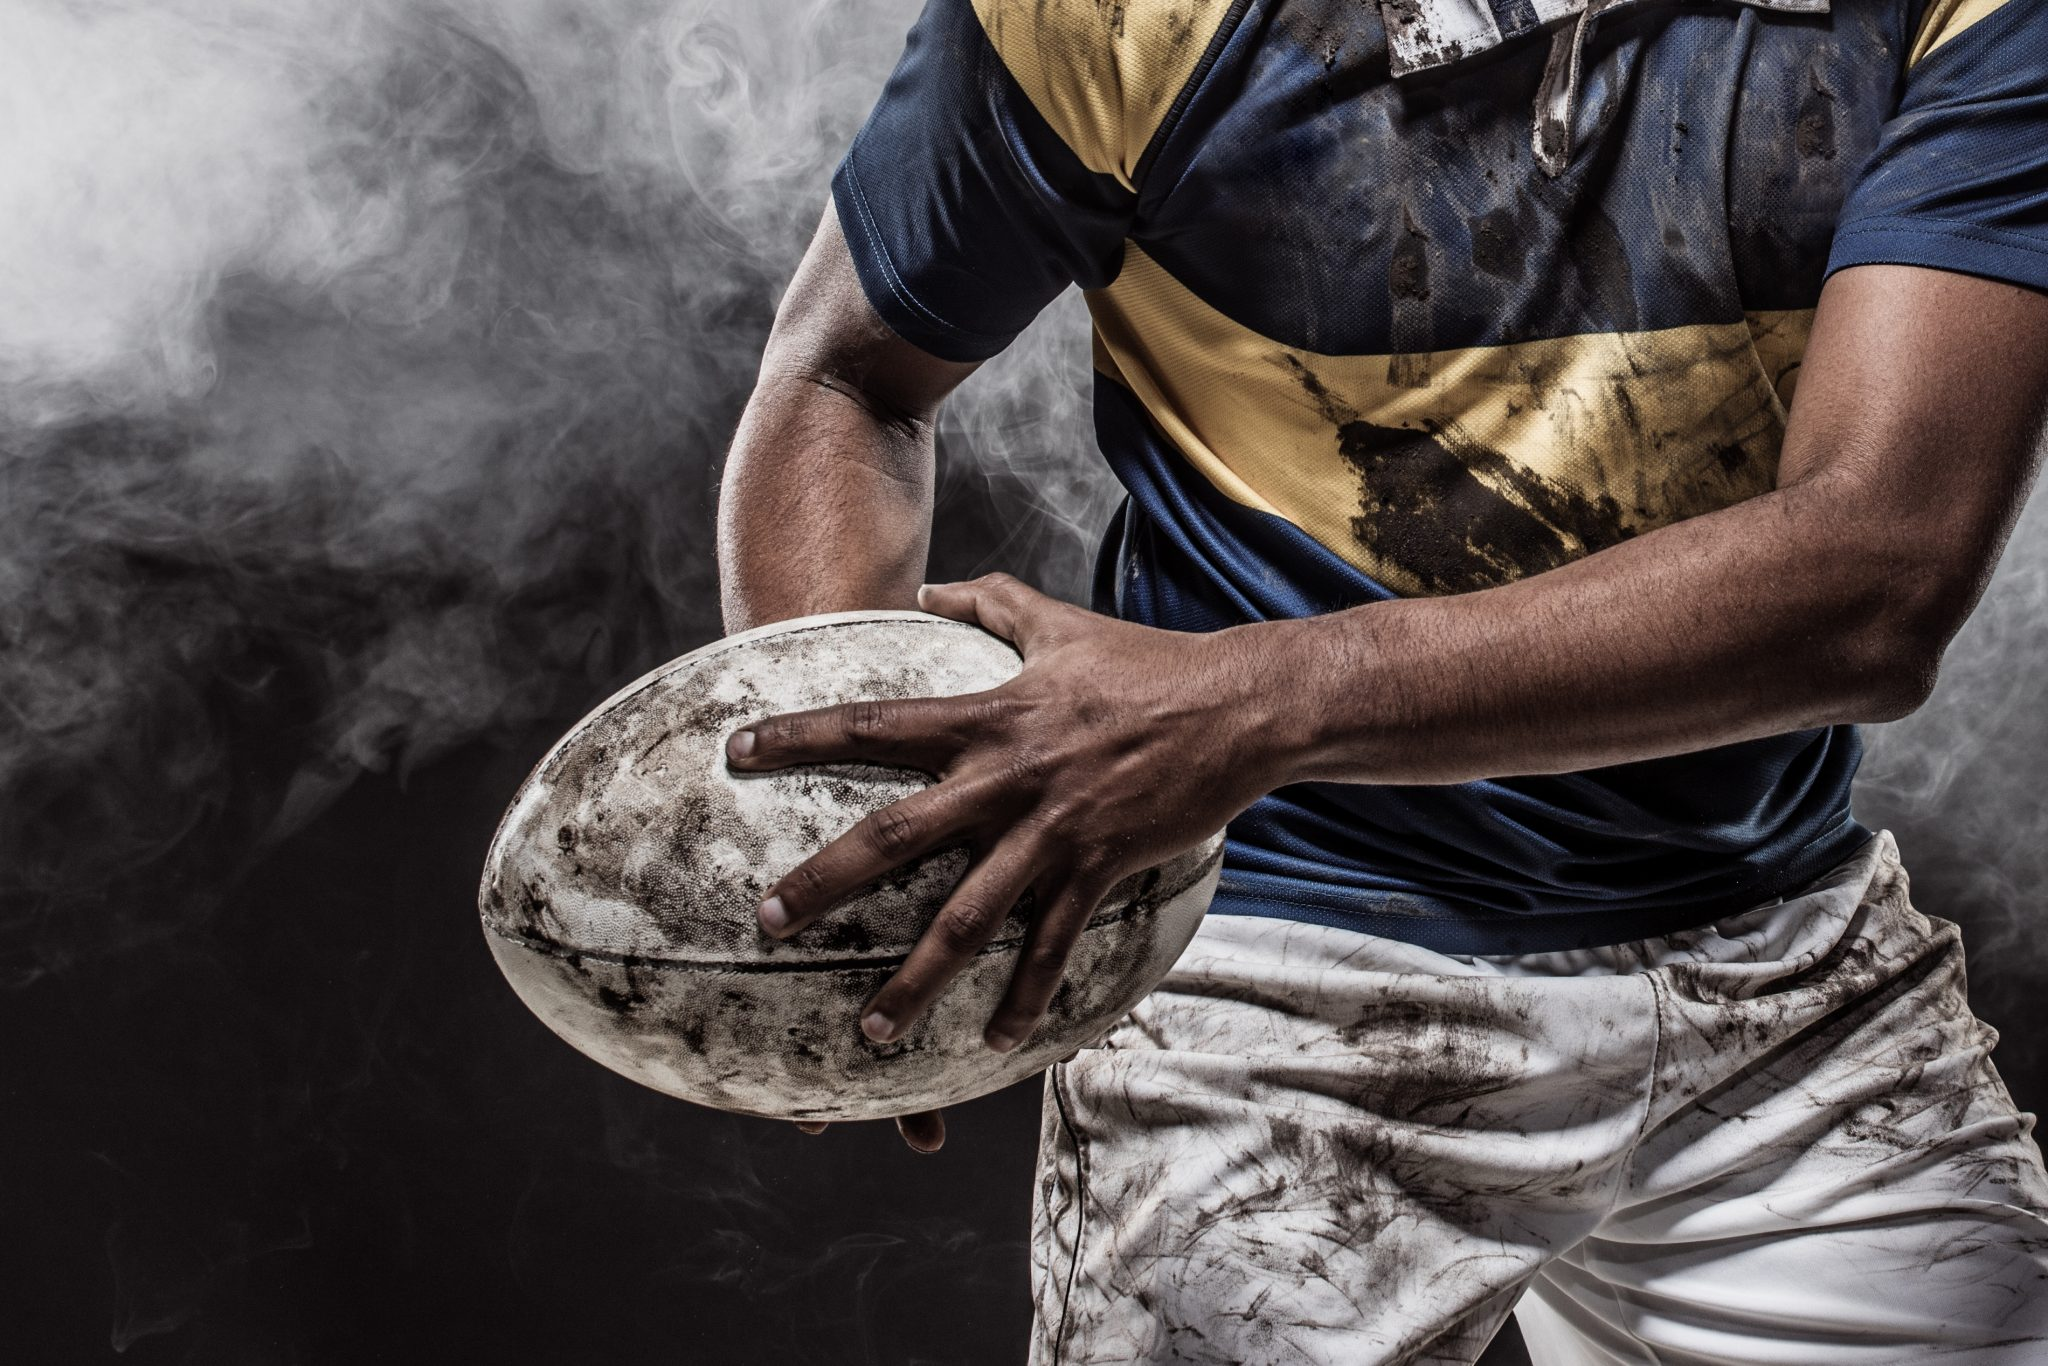 A Bloody Muddy Rugby Player